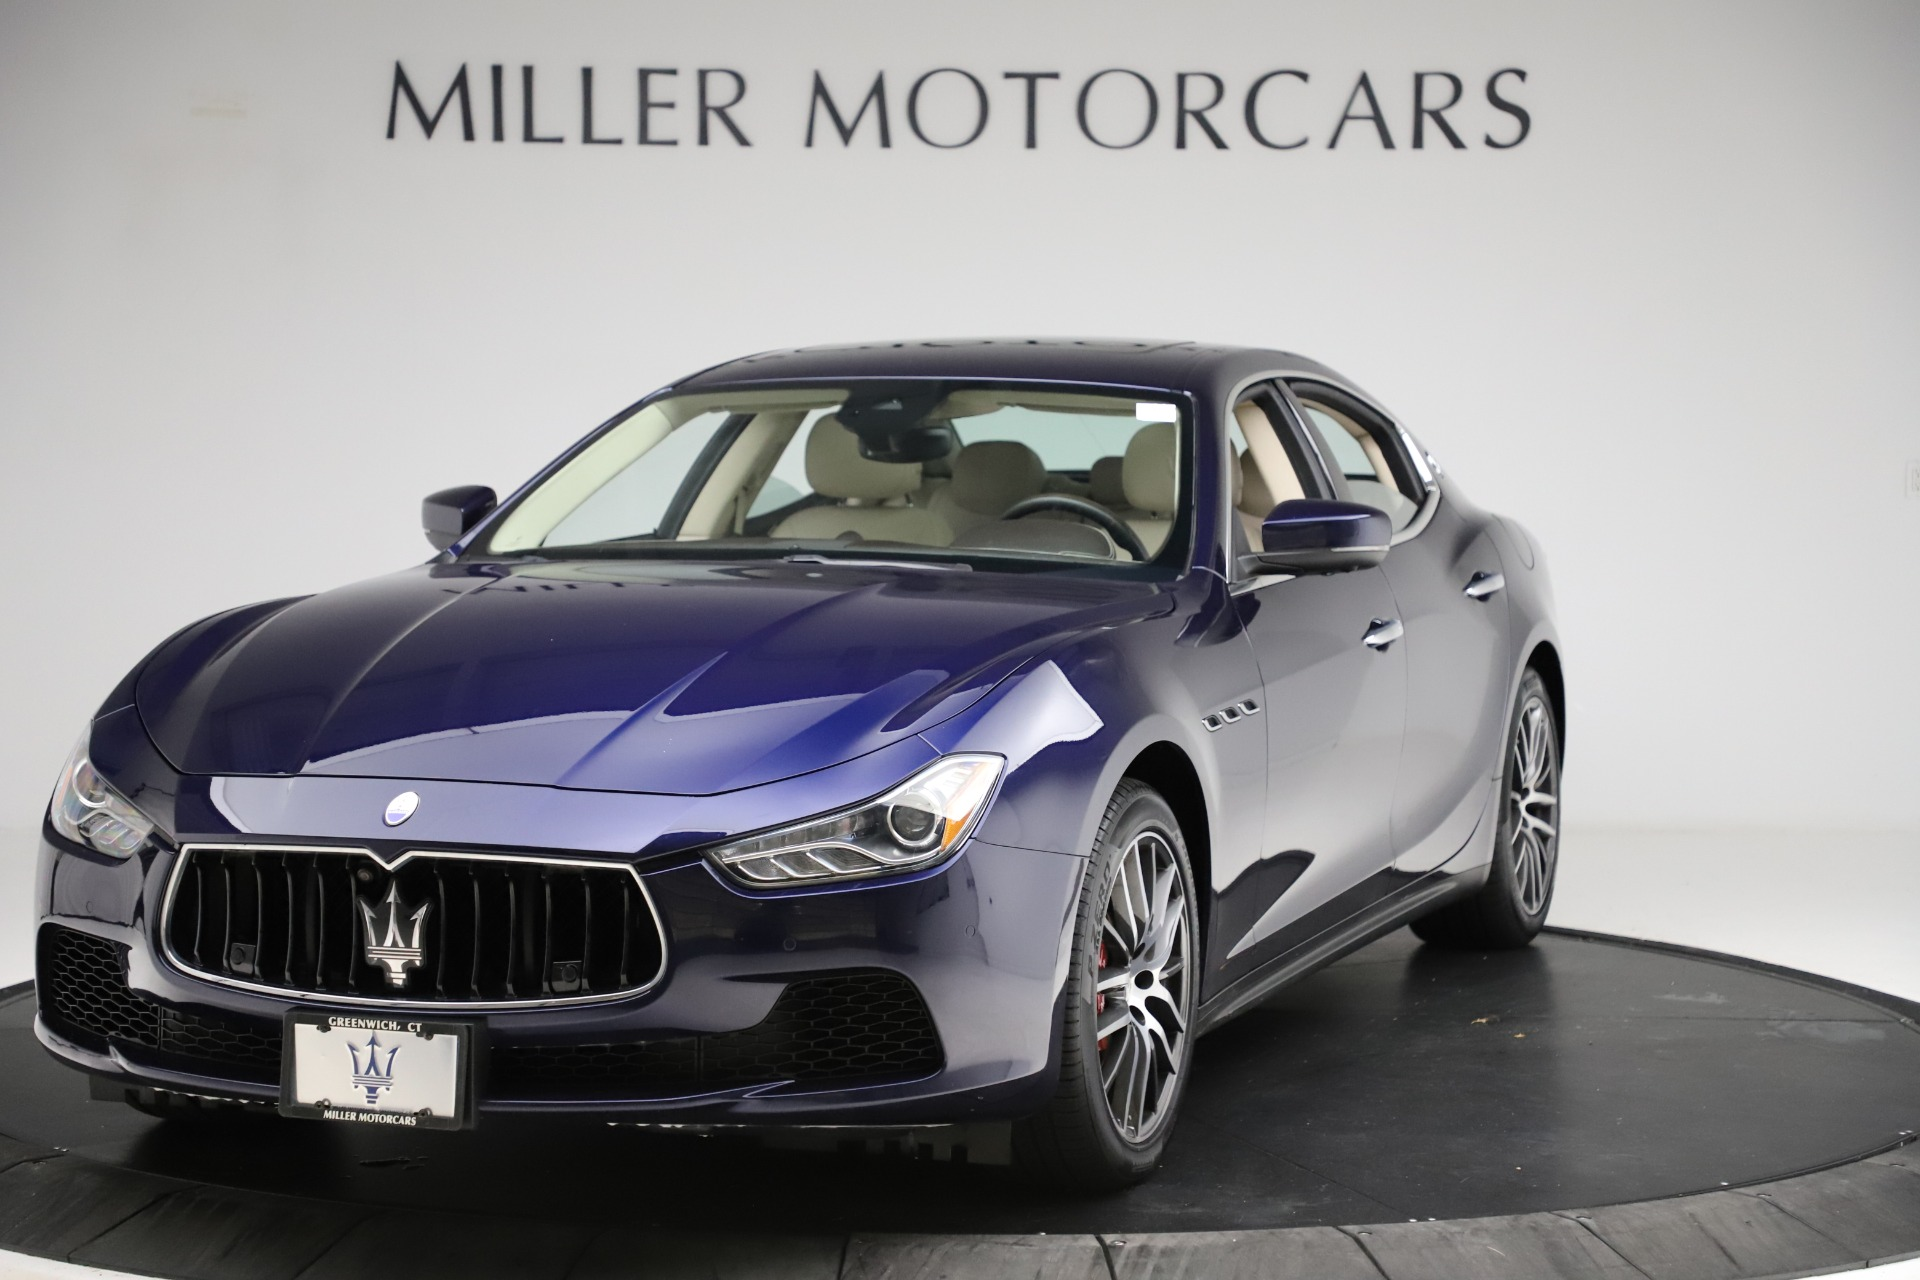 Used 2017 Maserati Ghibli S Q4 for sale $48,900 at Alfa Romeo of Westport in Westport CT 06880 1